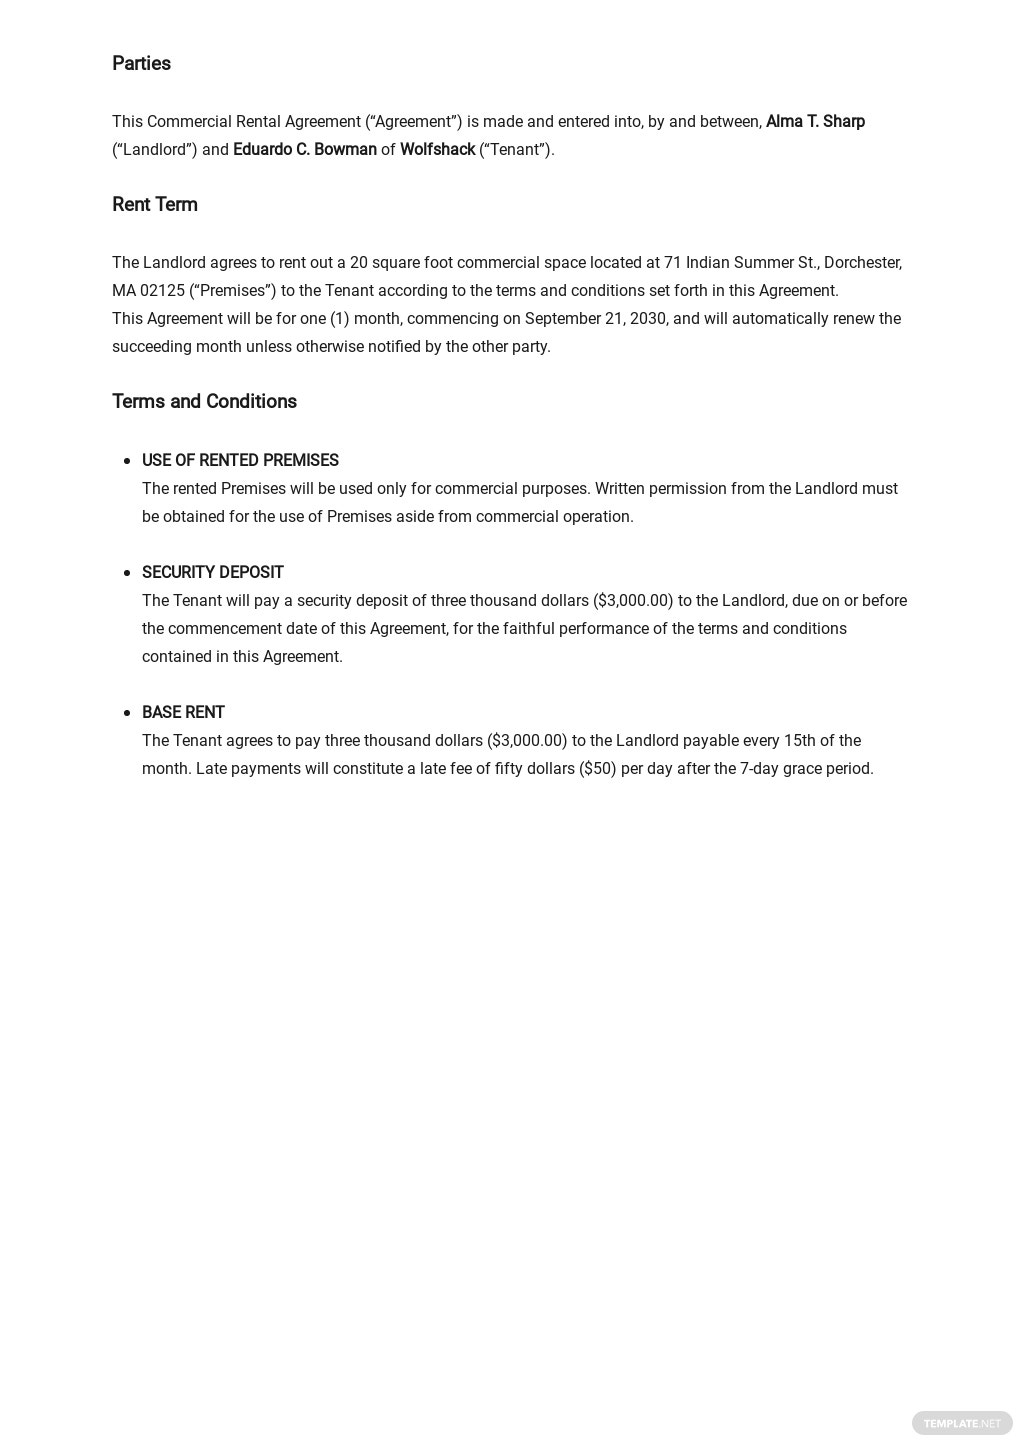 Commercial Rental Agreement Template 1.jpe